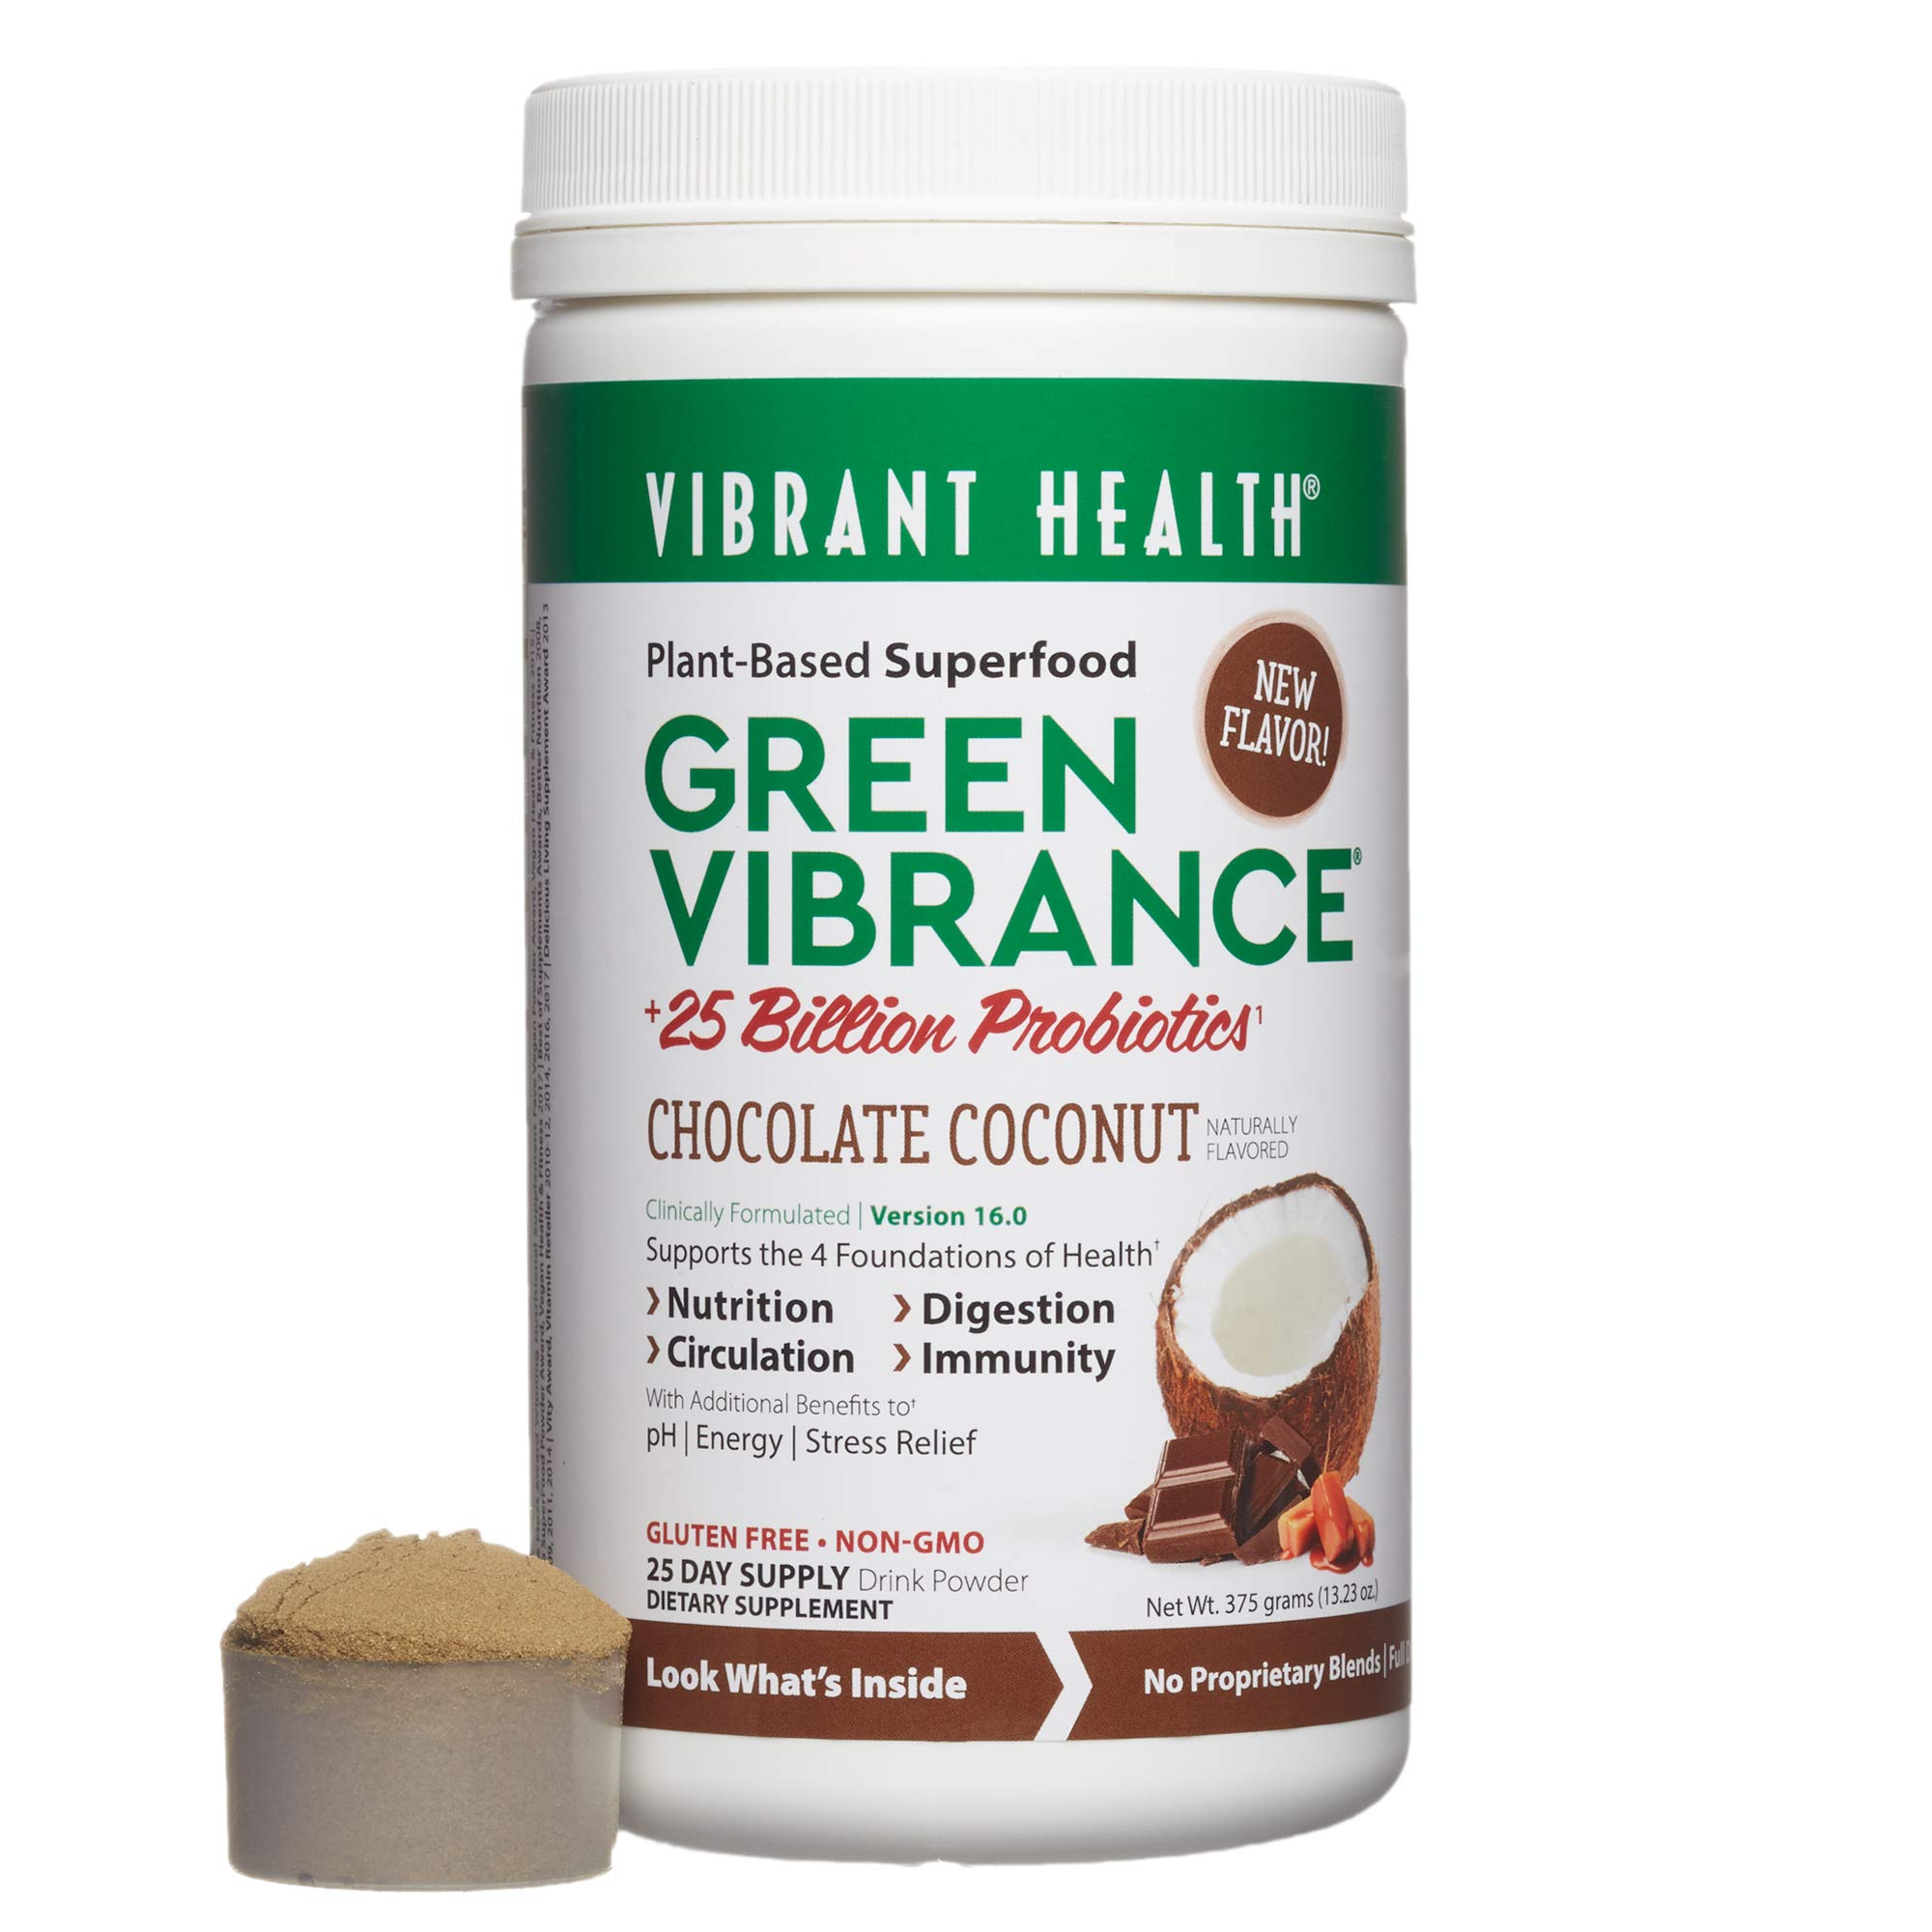 Vibrant Health - Green Vibrance, Plant-Based Superfood to Support Immunity, Digestion, and Energy, 25 Billion Probiotics, Gluten Free, Non-GMO, Vegetarian, Chocolate Coconut, 25 Servings